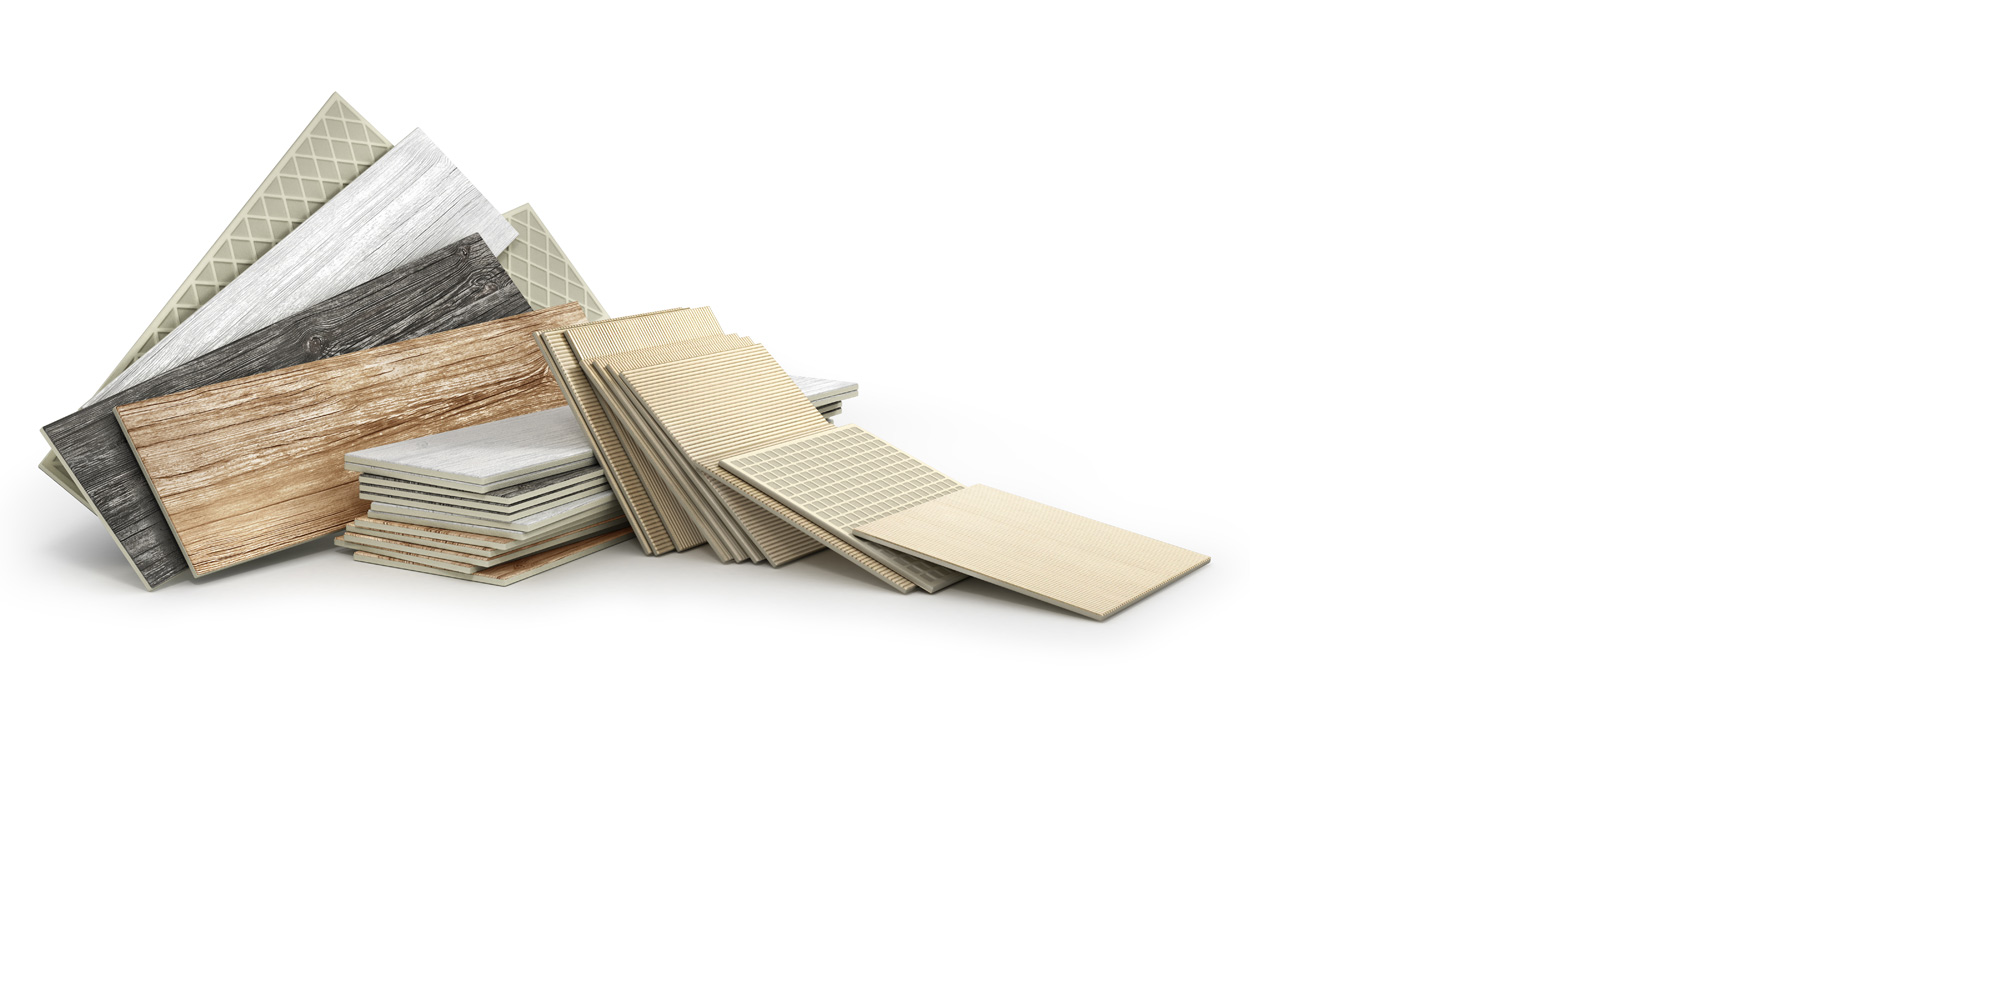 Tiles and wood flooring clearance lines and sale in Ireland.